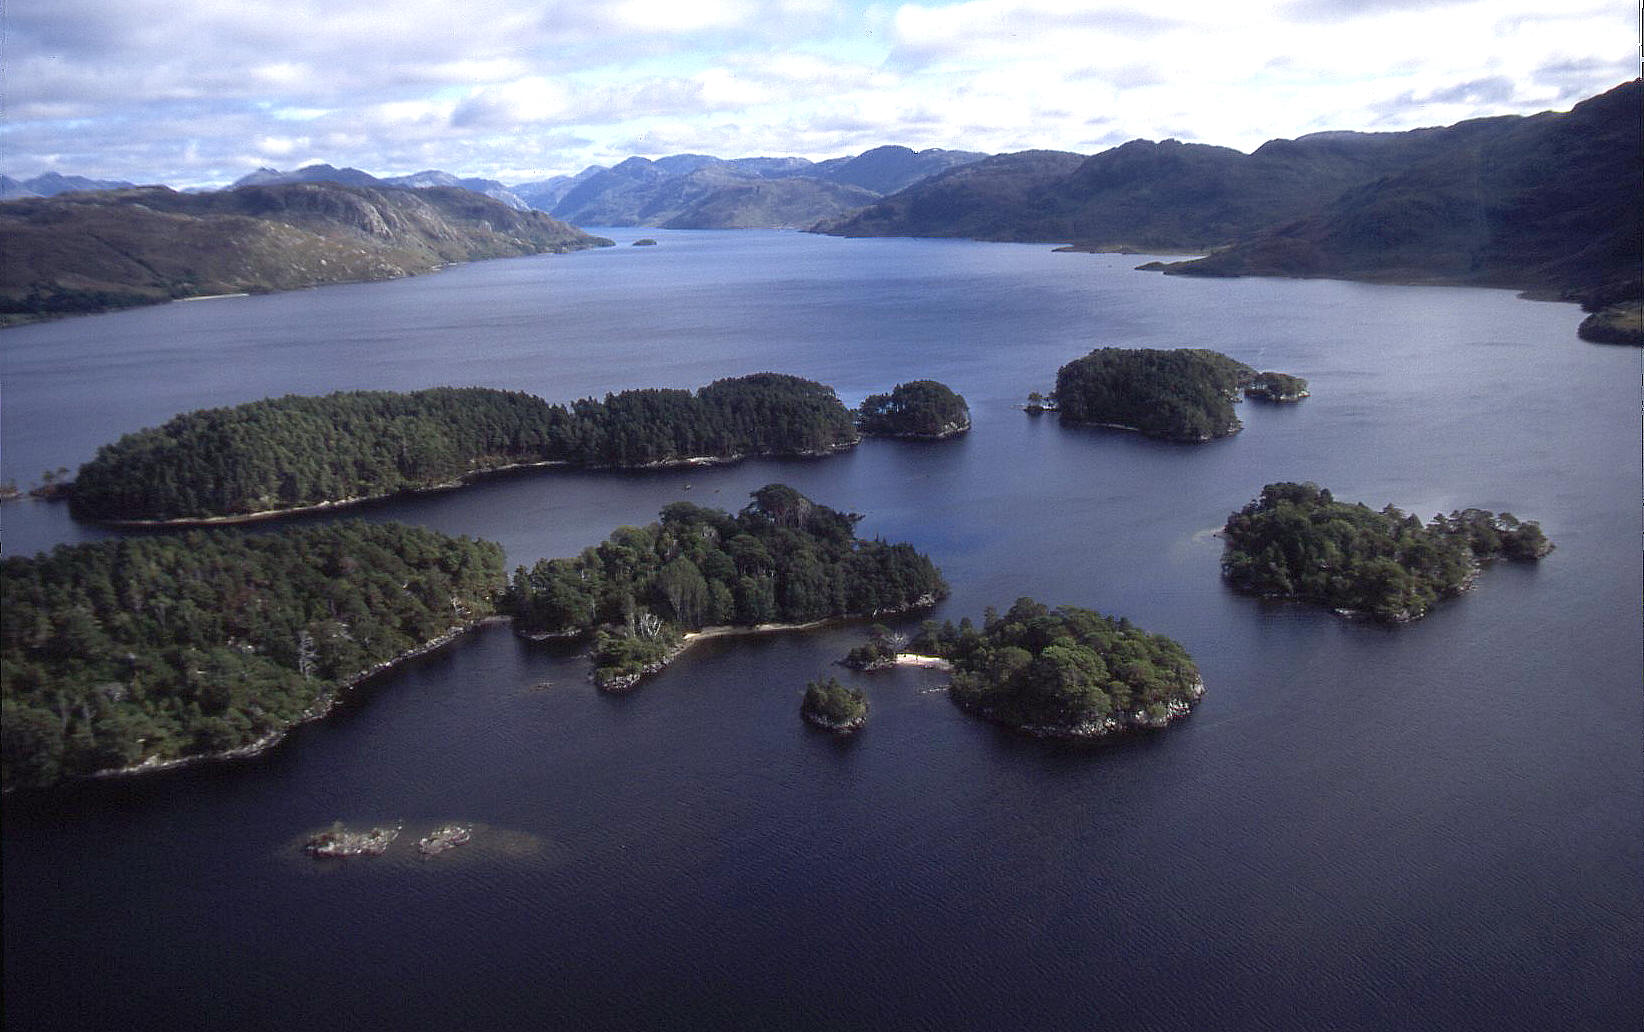 Loch Morar in the west of Scotland